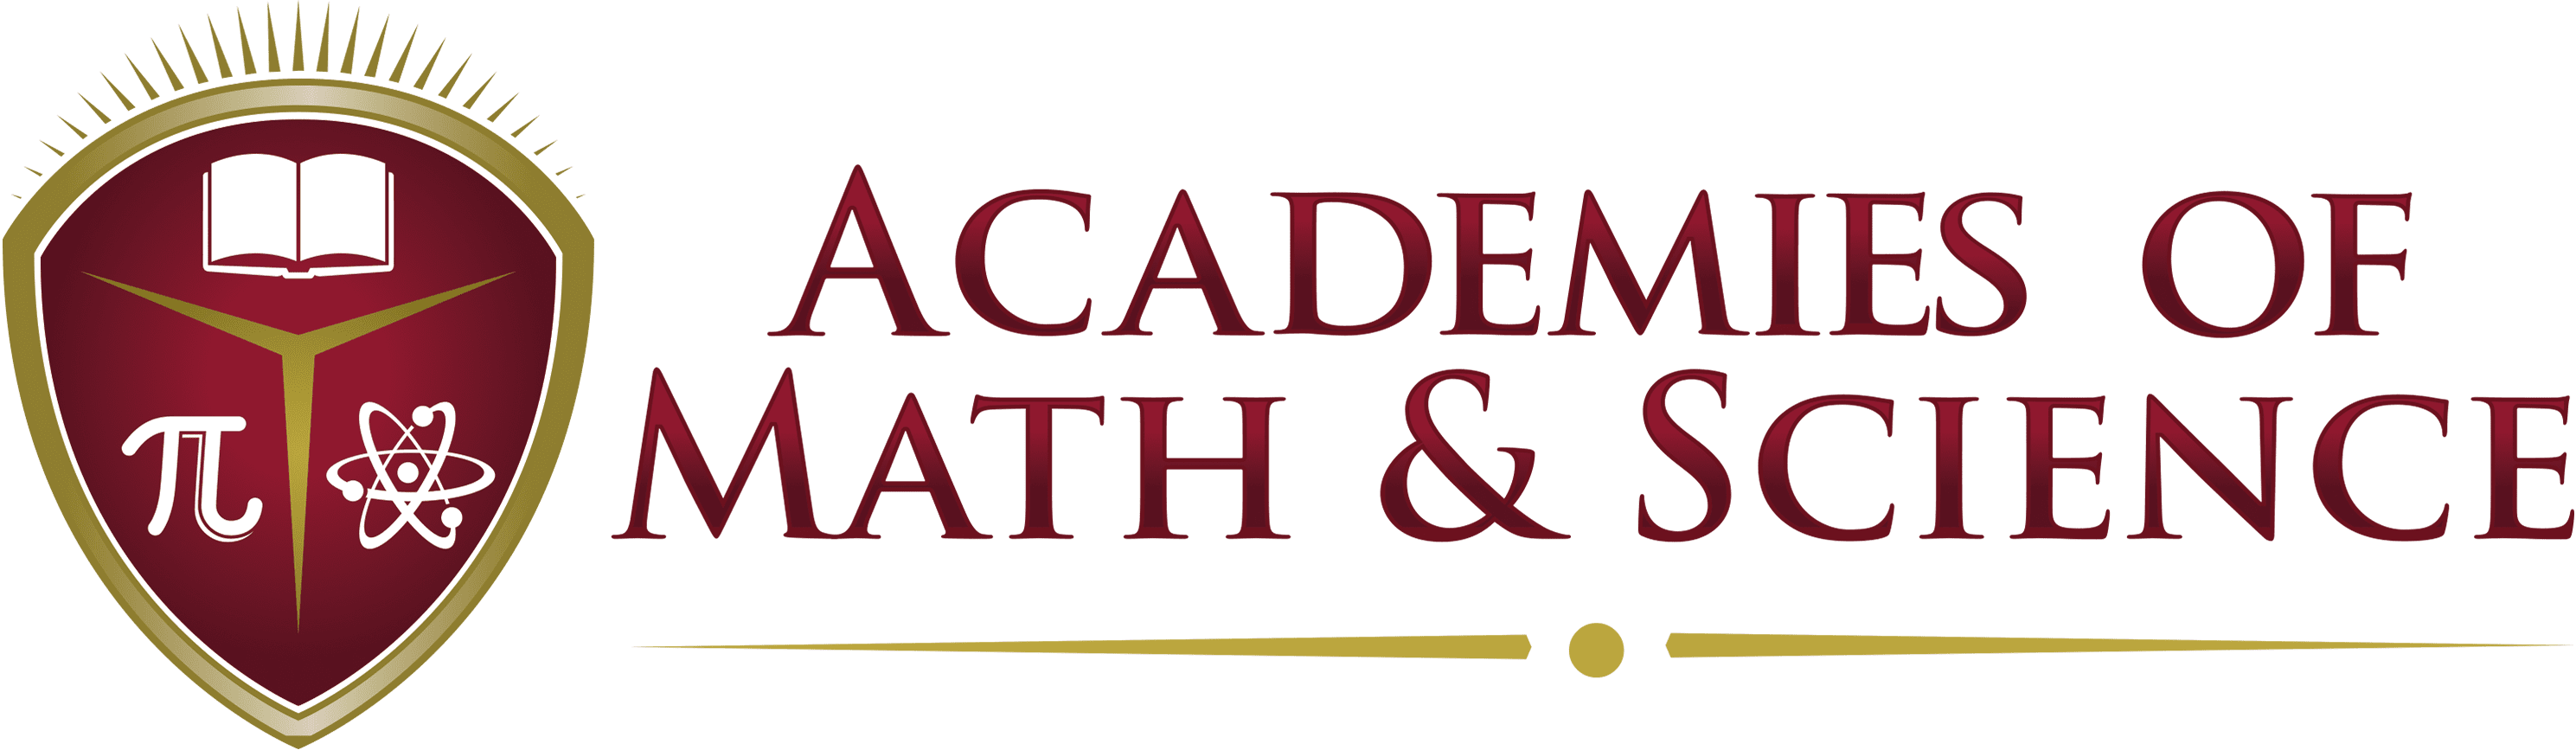 Academies of Math and Science's logo